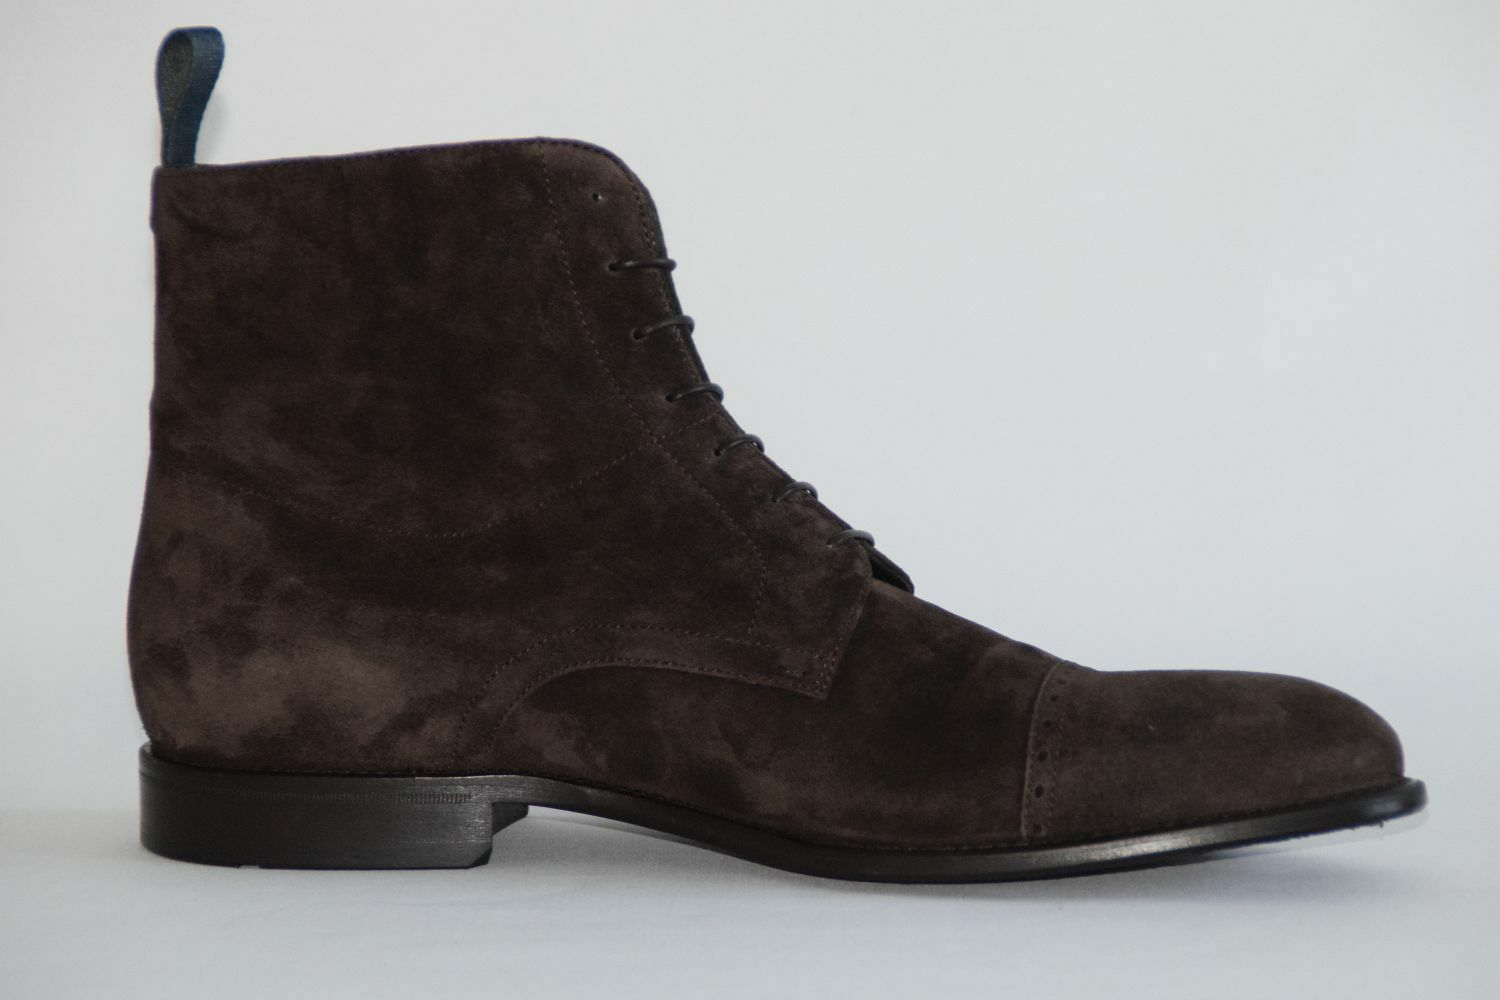 HUGO BOSS ANKLE Stiefel, Stiefel, Stiefel, Mod. Stosonio, Gr. EU 41,5   UK 7.5   US 8.5  Dark braun    64fcc9